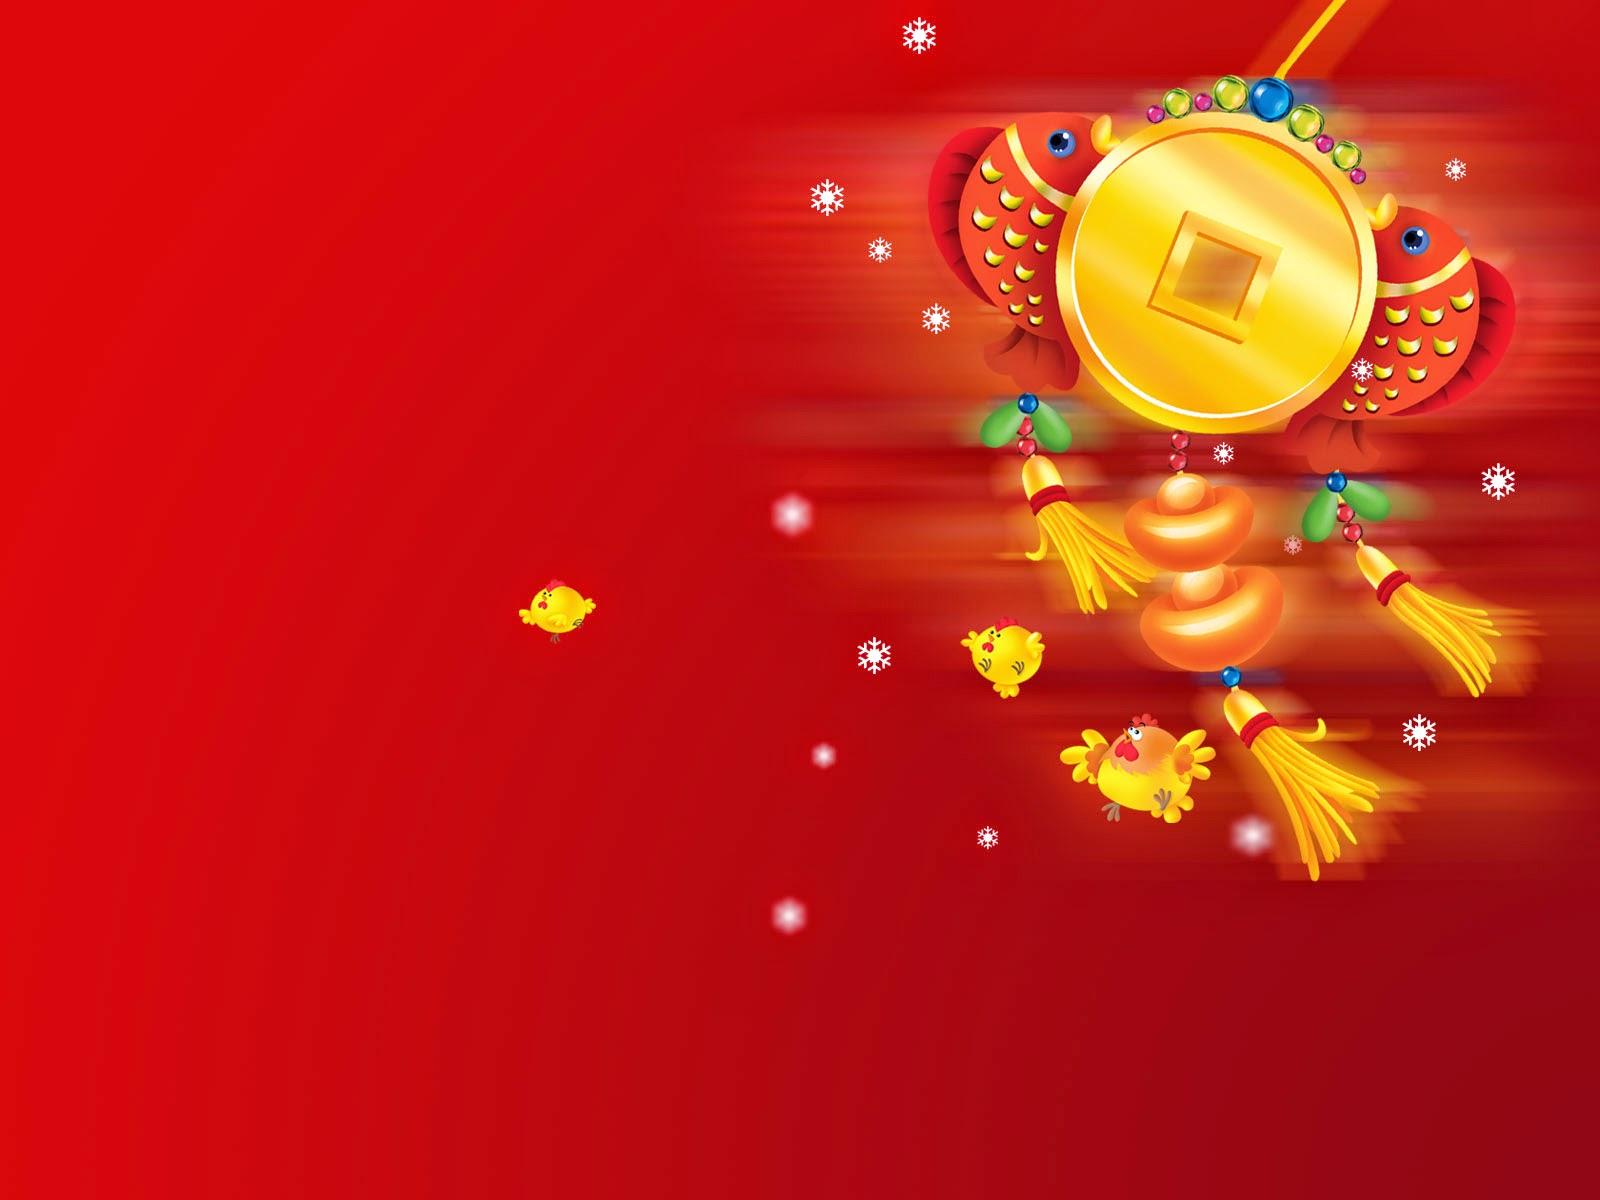 2015 Chinese New Year Top Wallpaper Amazing Picture 1600x1200